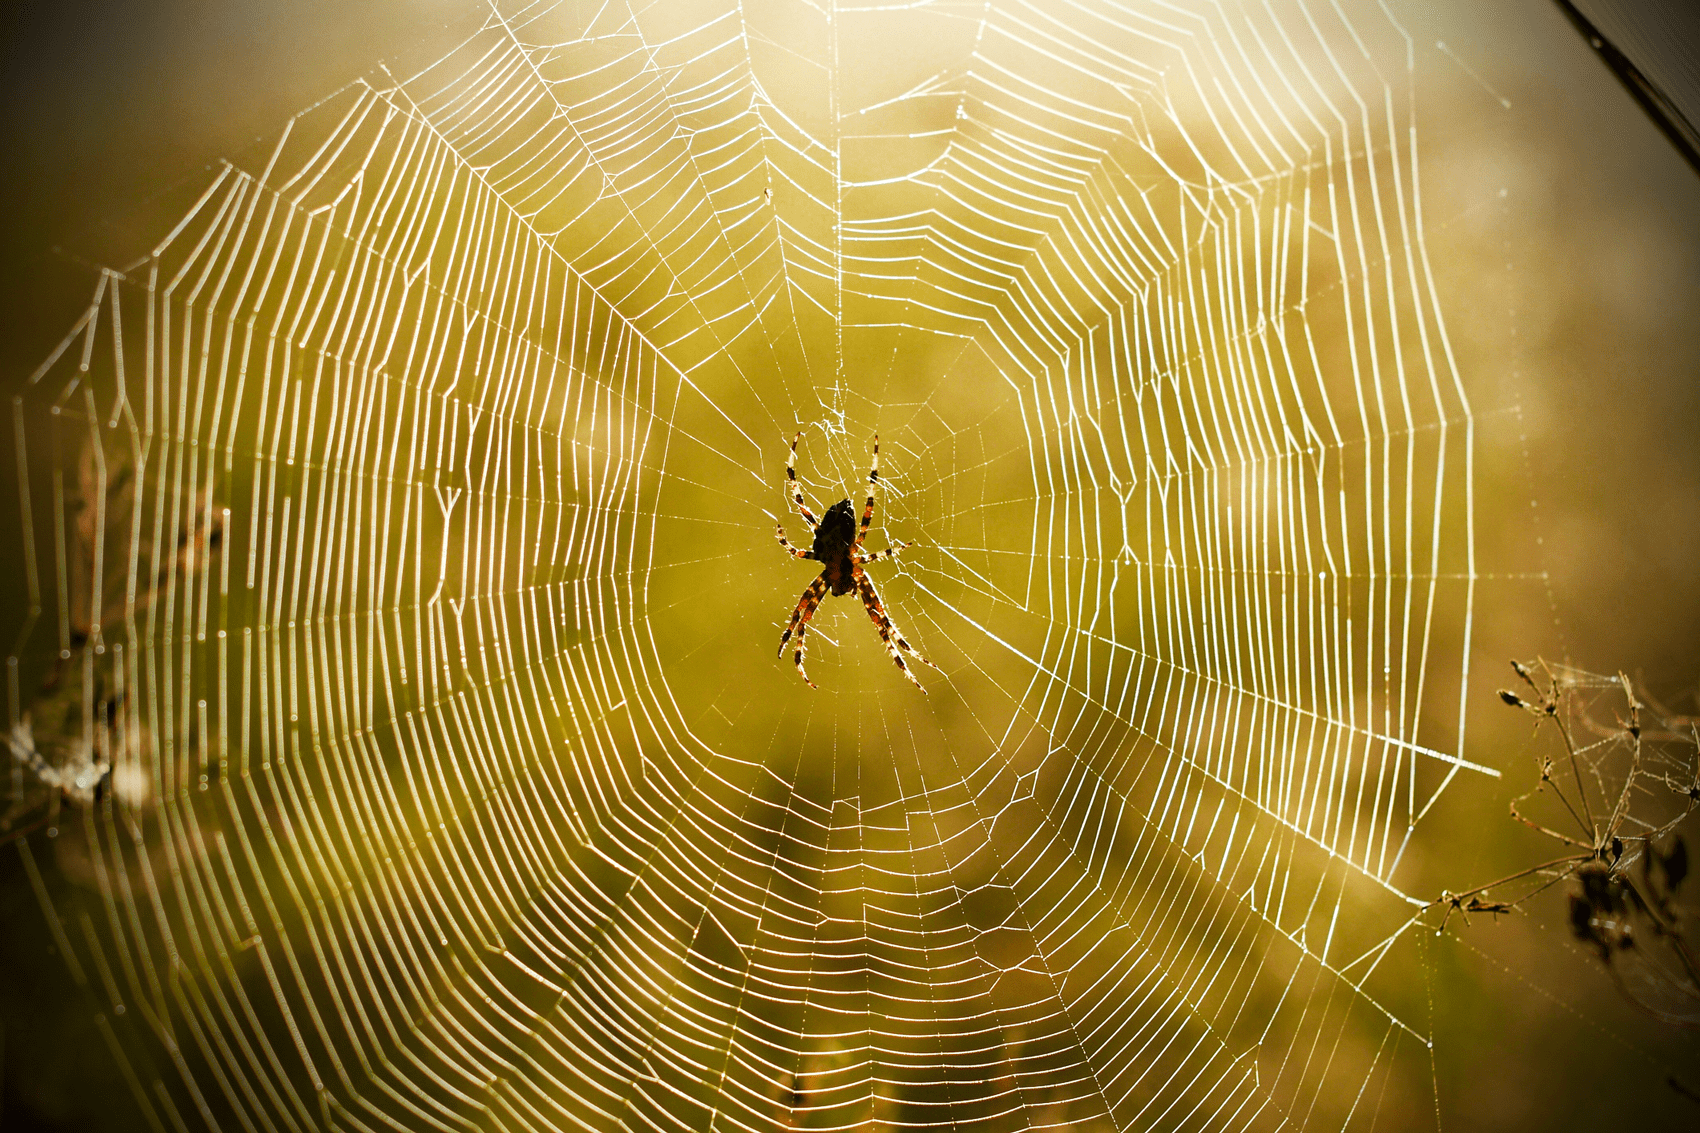 Sticky Science The Evolution Of Spider Webs Scientific American